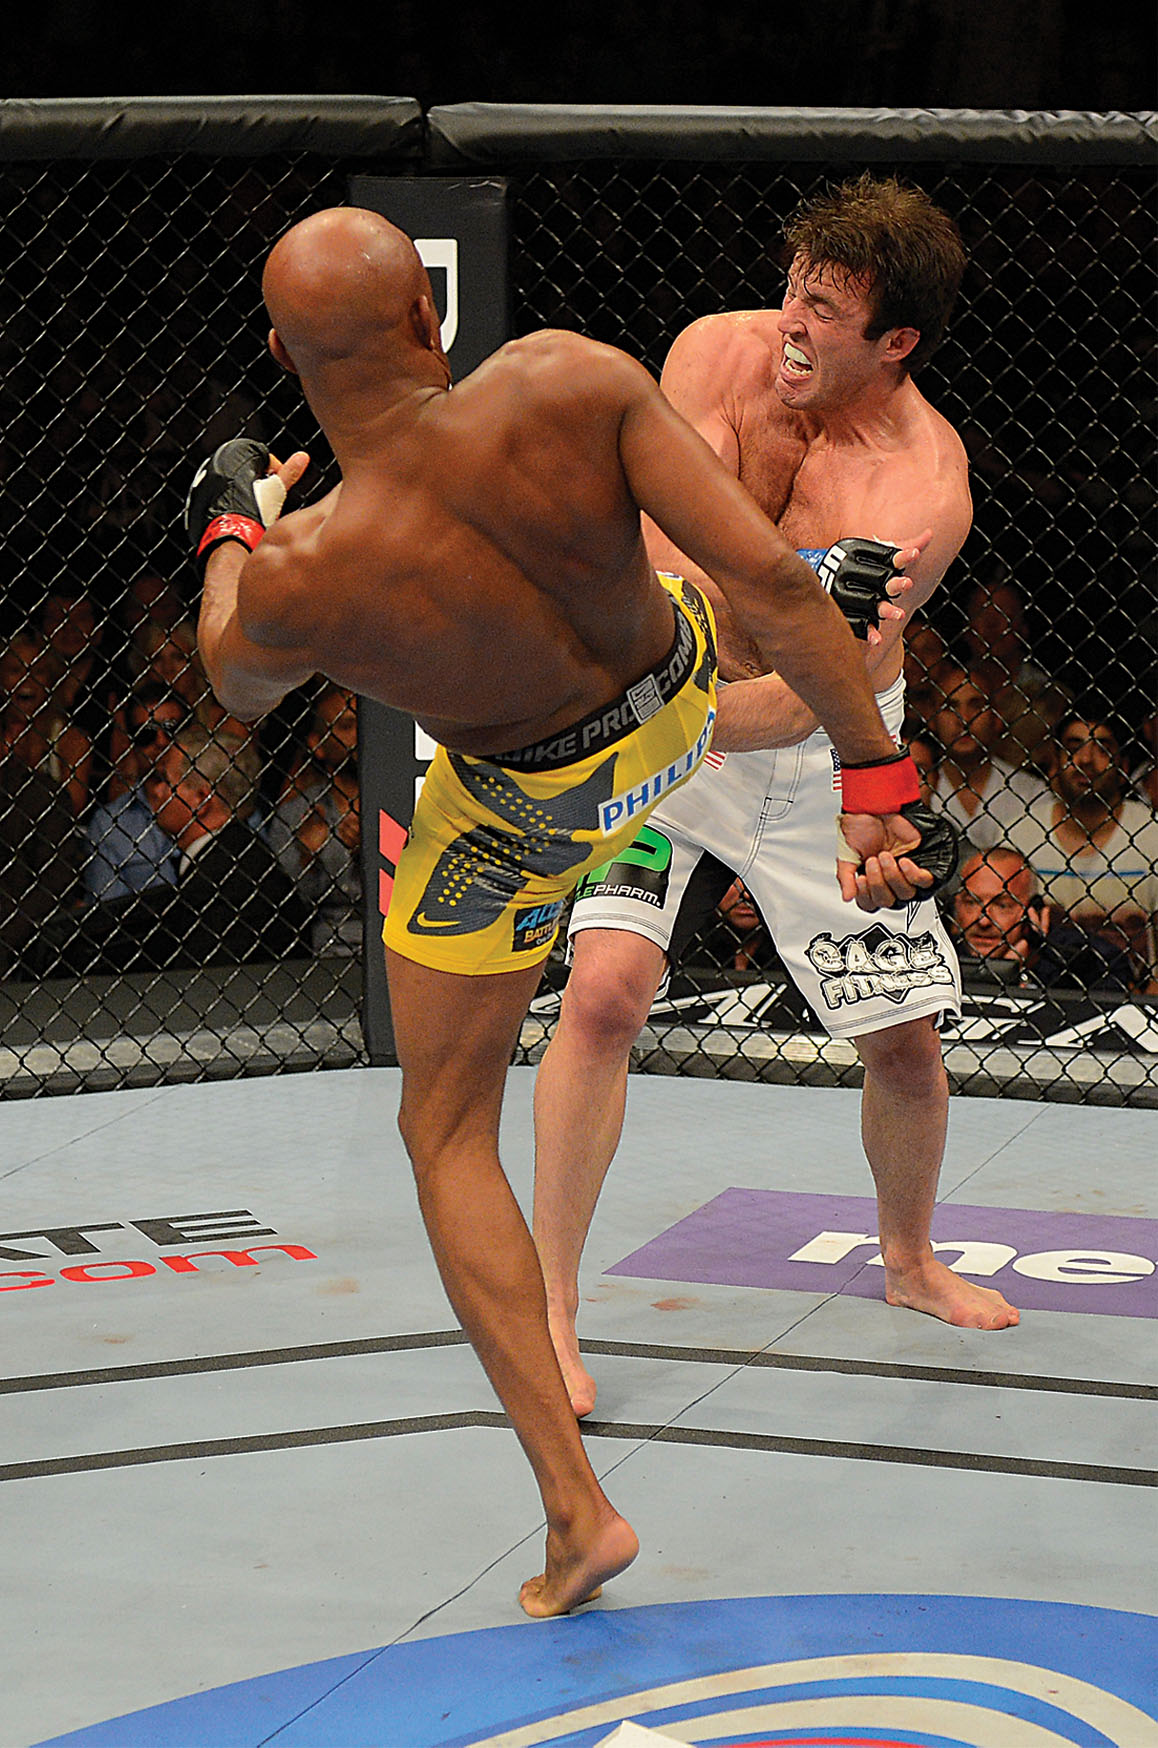 video review : Anderson Silva versus Chael Sonnen at UFC 148